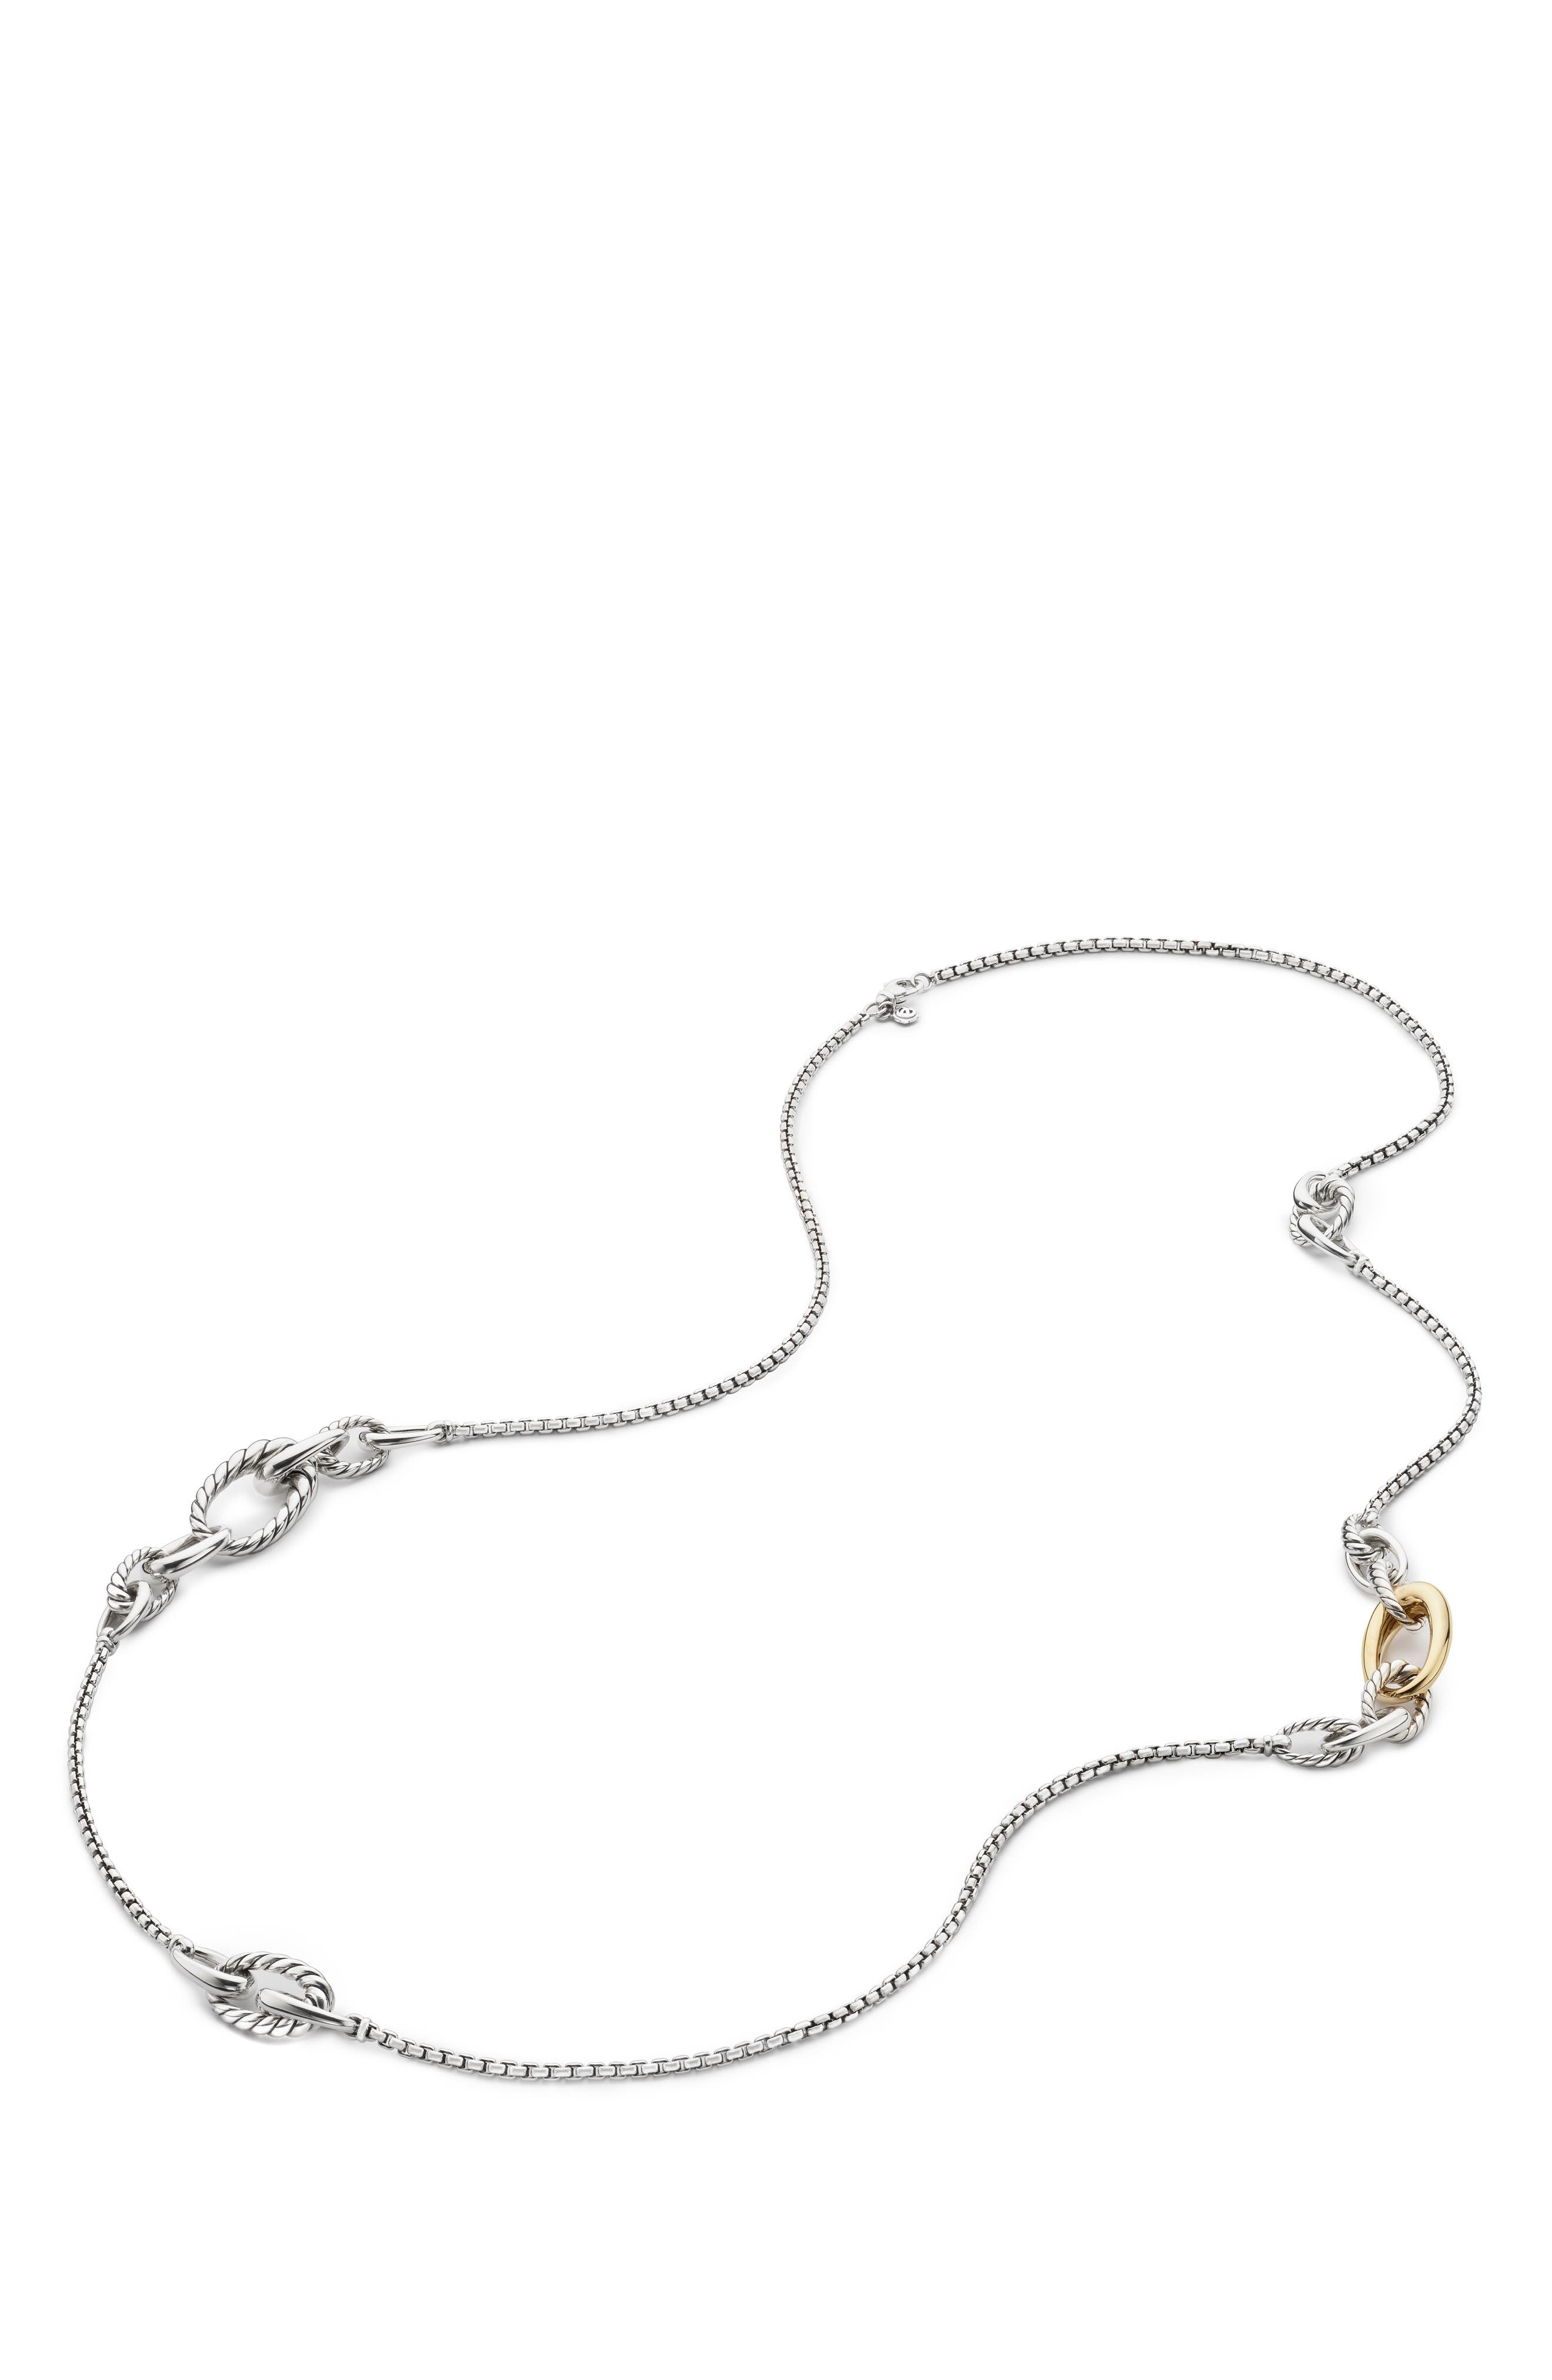 Pure Form Graduated Chain Station Necklace,                         Main,                         color, GOLD/ SILVER